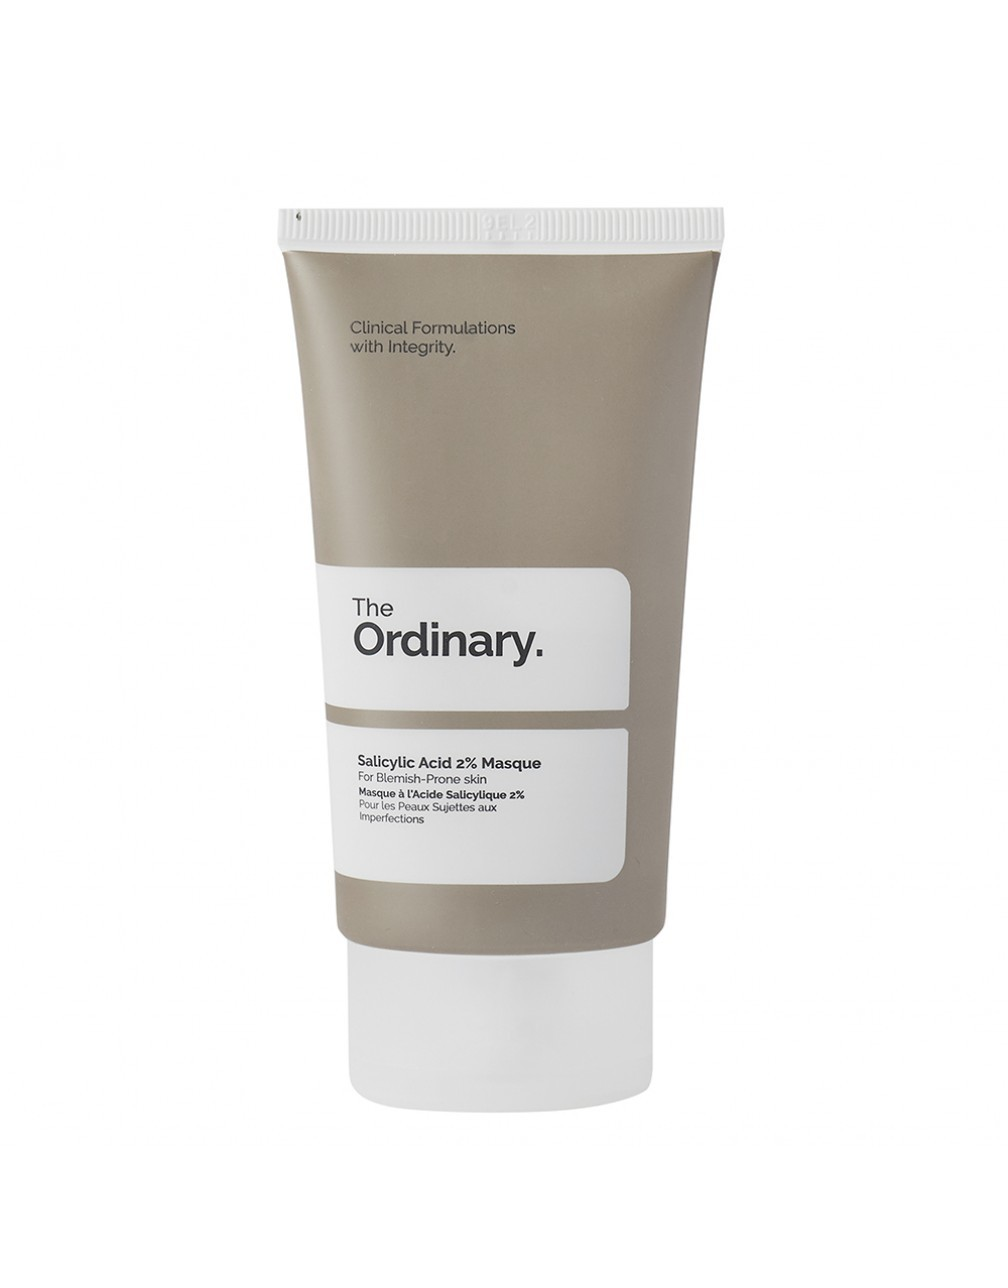 Маска для лица The Ordinary Salicylic Acid 2% Masque 50ml